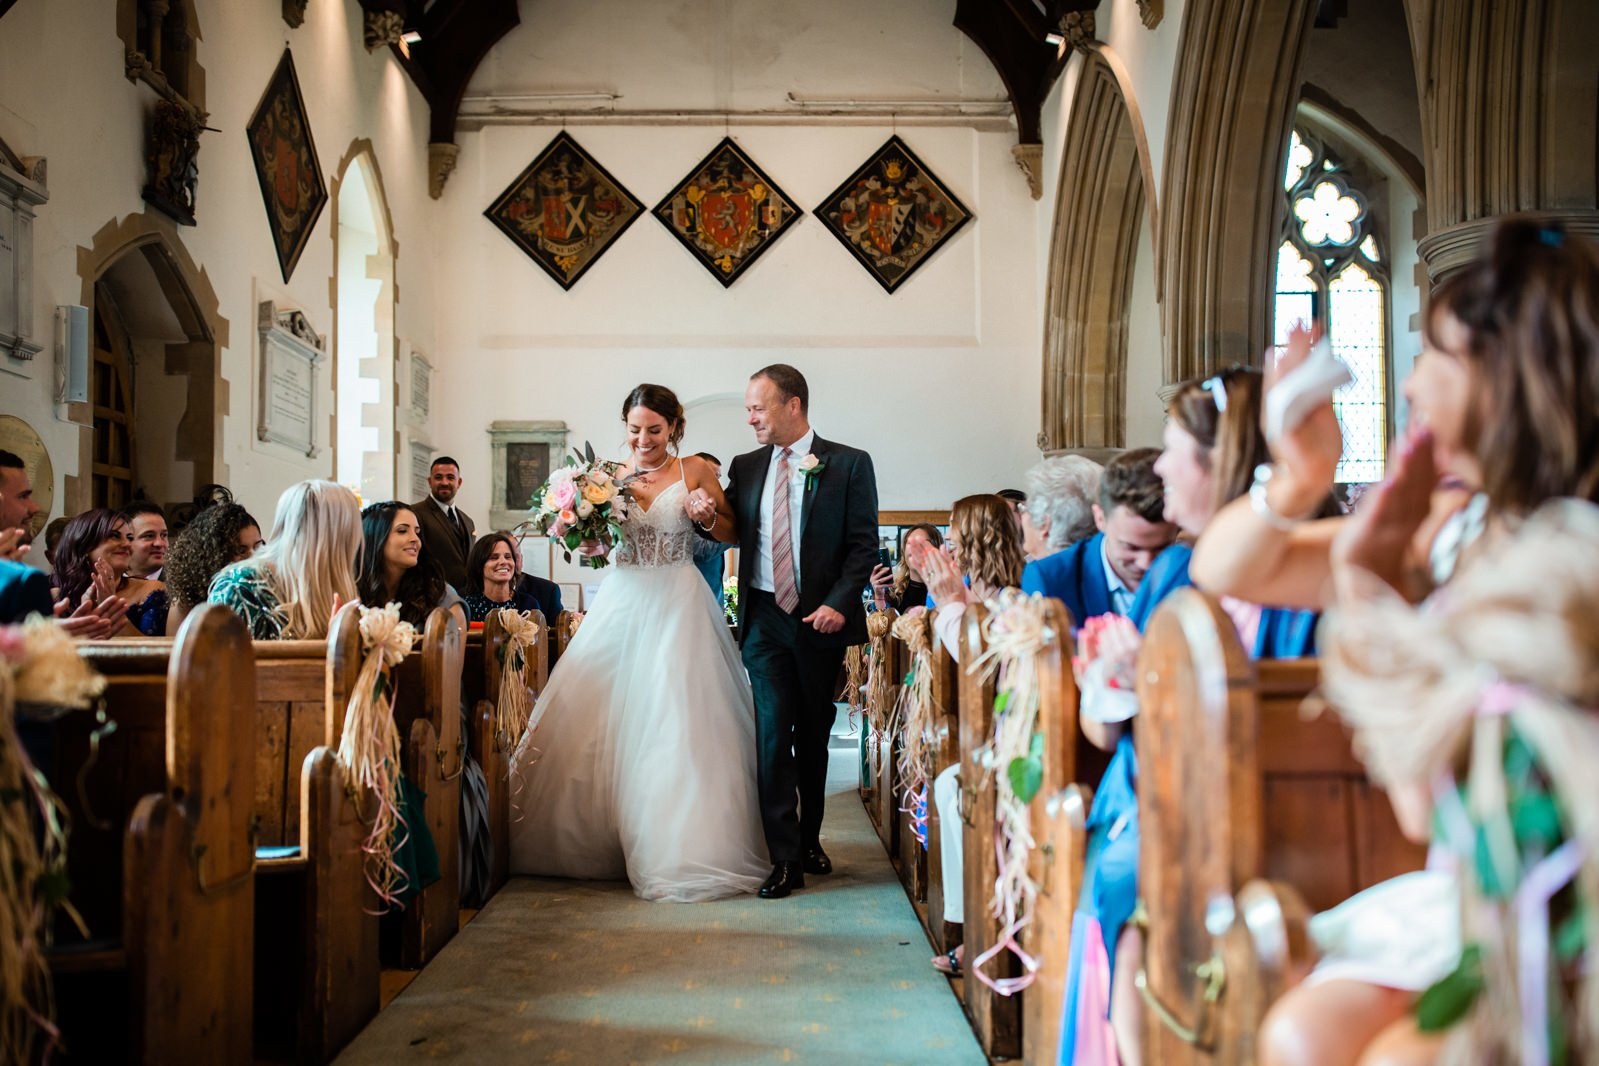 The Elephant Pangbourne Wedding - Stunning Kayleigh & Shane 31